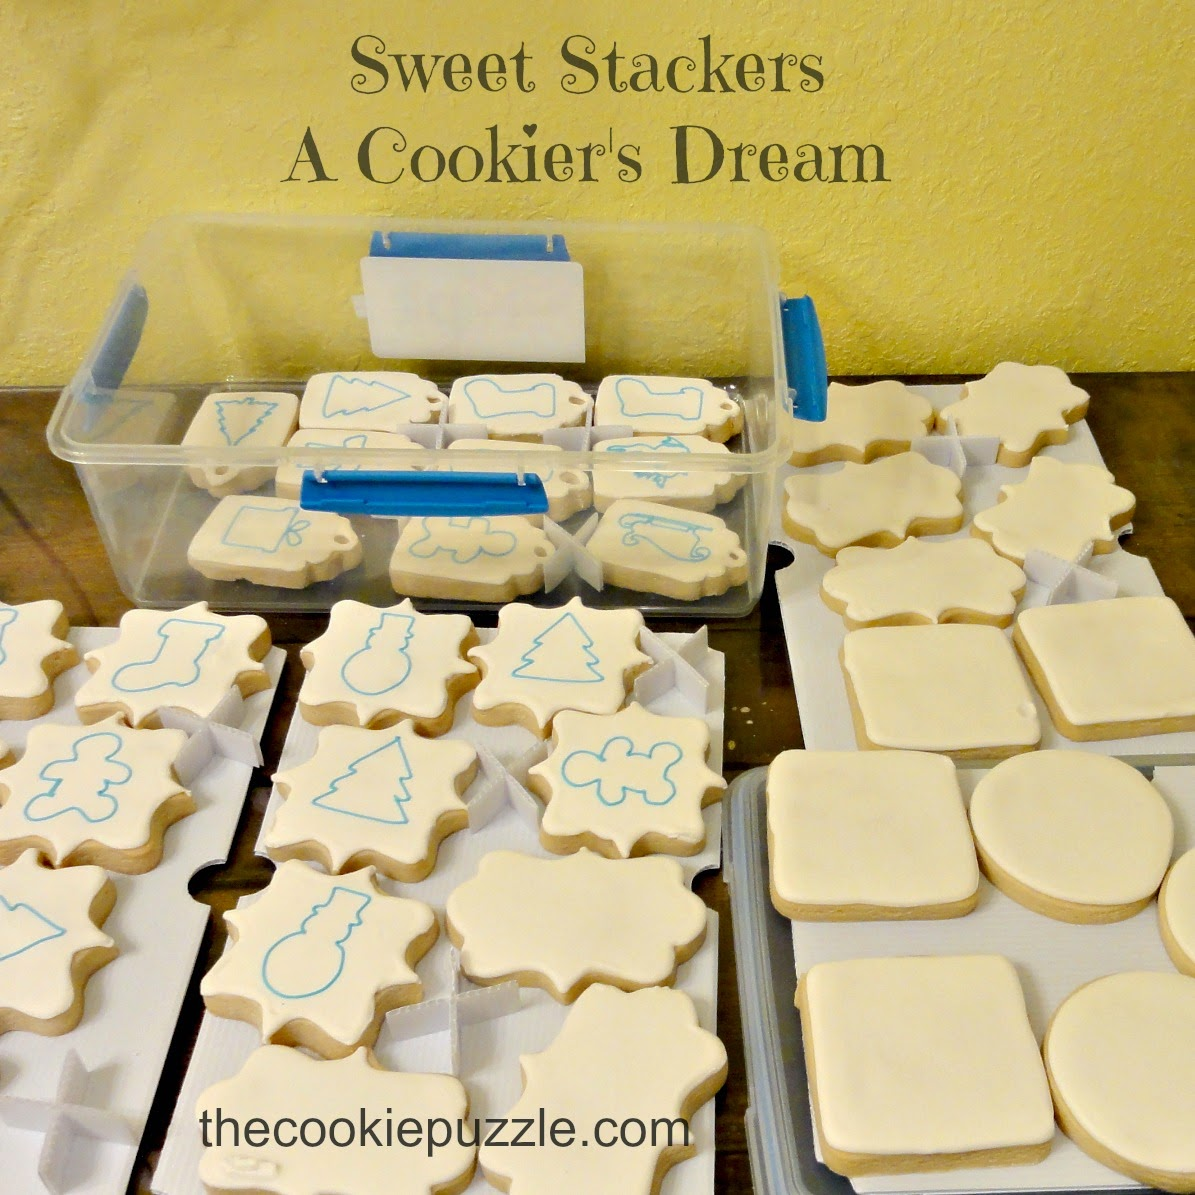 Sweet Stackers : A Cookier's Dream